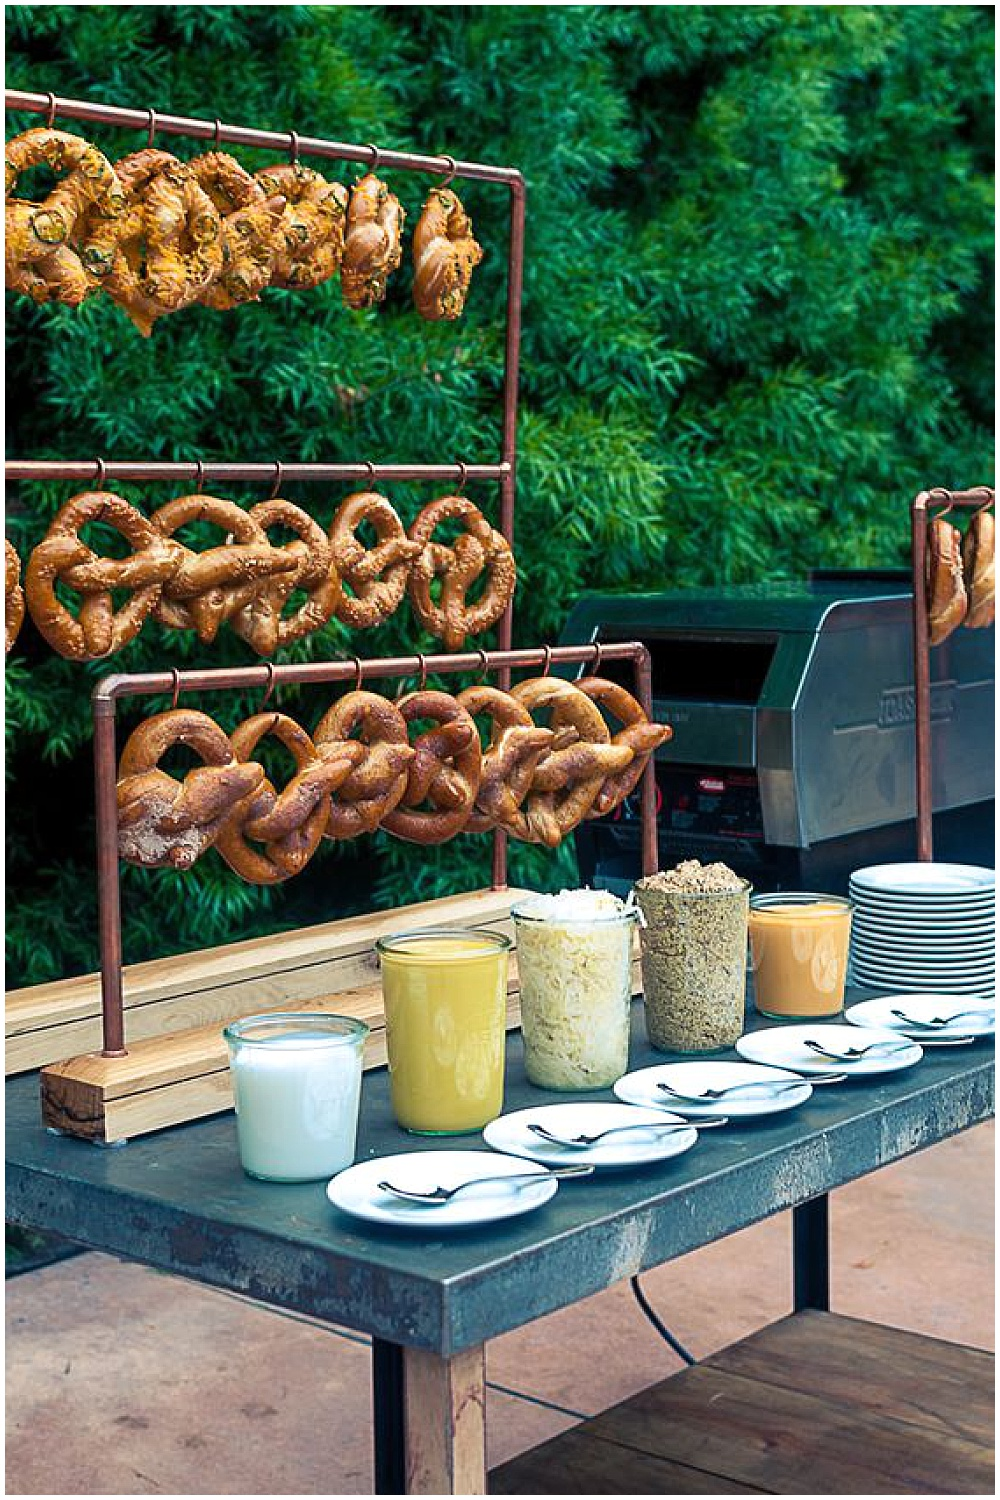 7 Waysto Make Your Wedding Interactive | interactive wedding; wedding ideas; food stations; station ideas; food station ideas; tapas-style wedding; tapas-style food station; pretzel station; pretzel food station